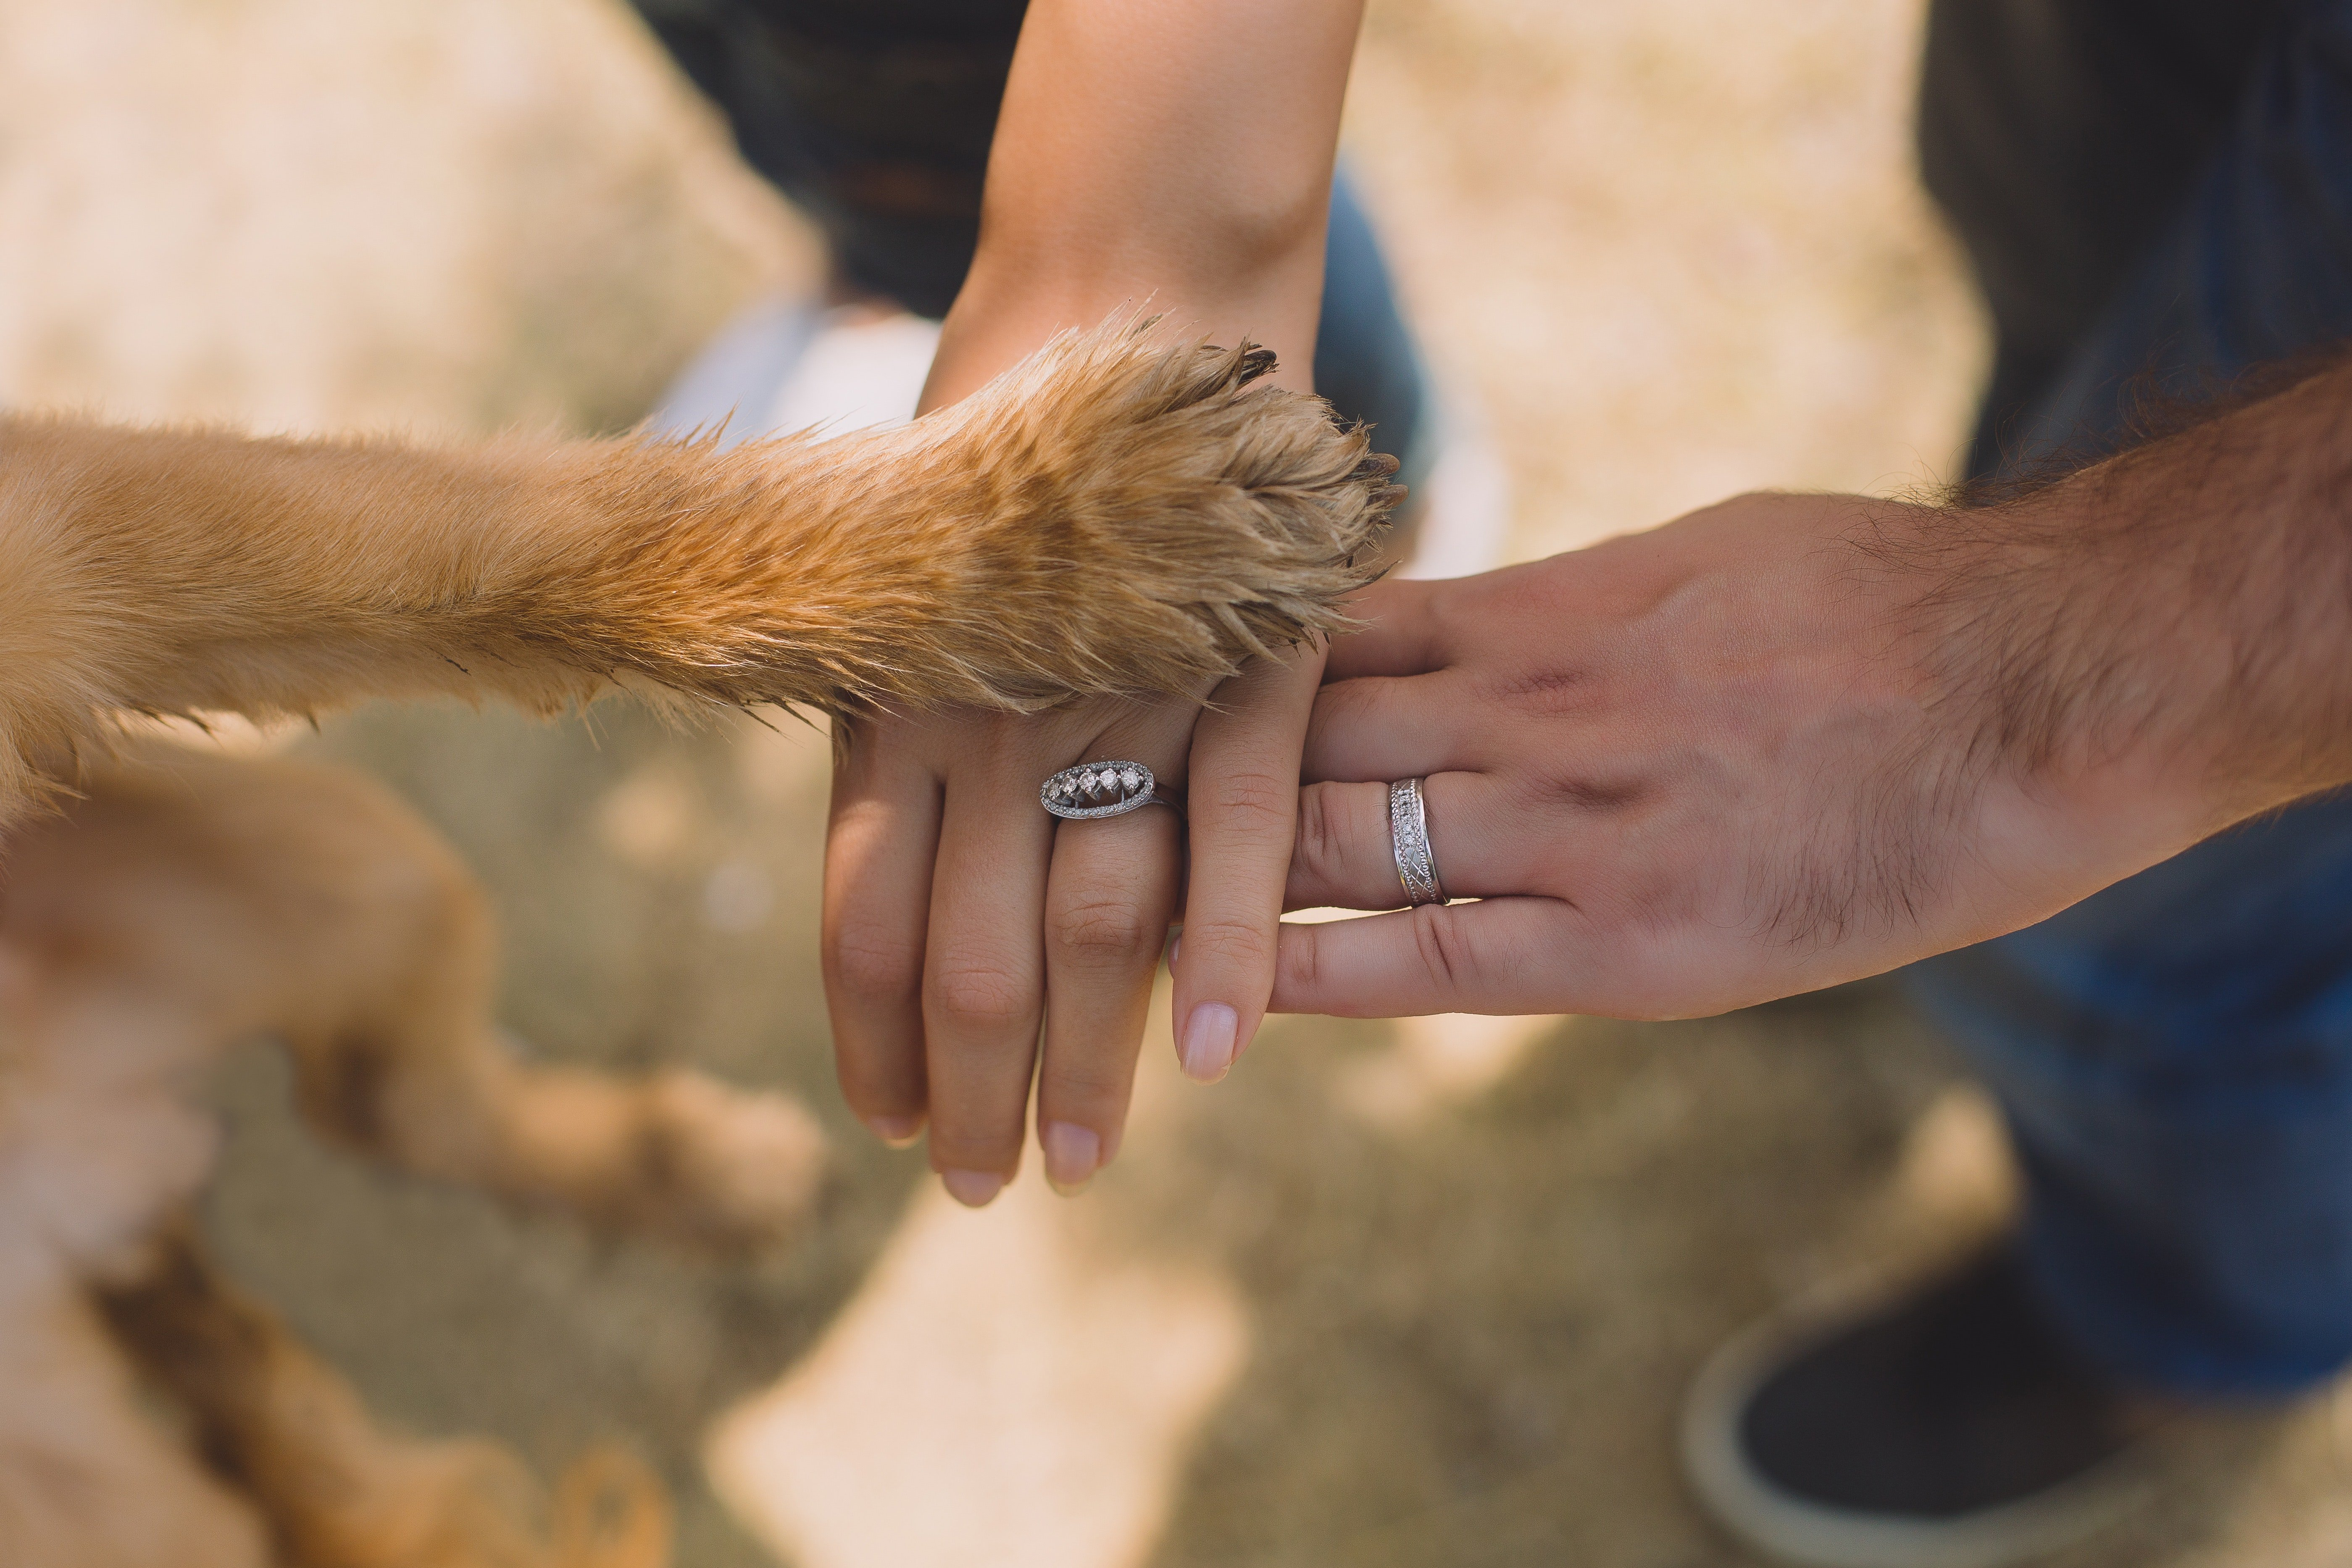 A dog's paw on top of a couple's hands | Source: Pexels.com